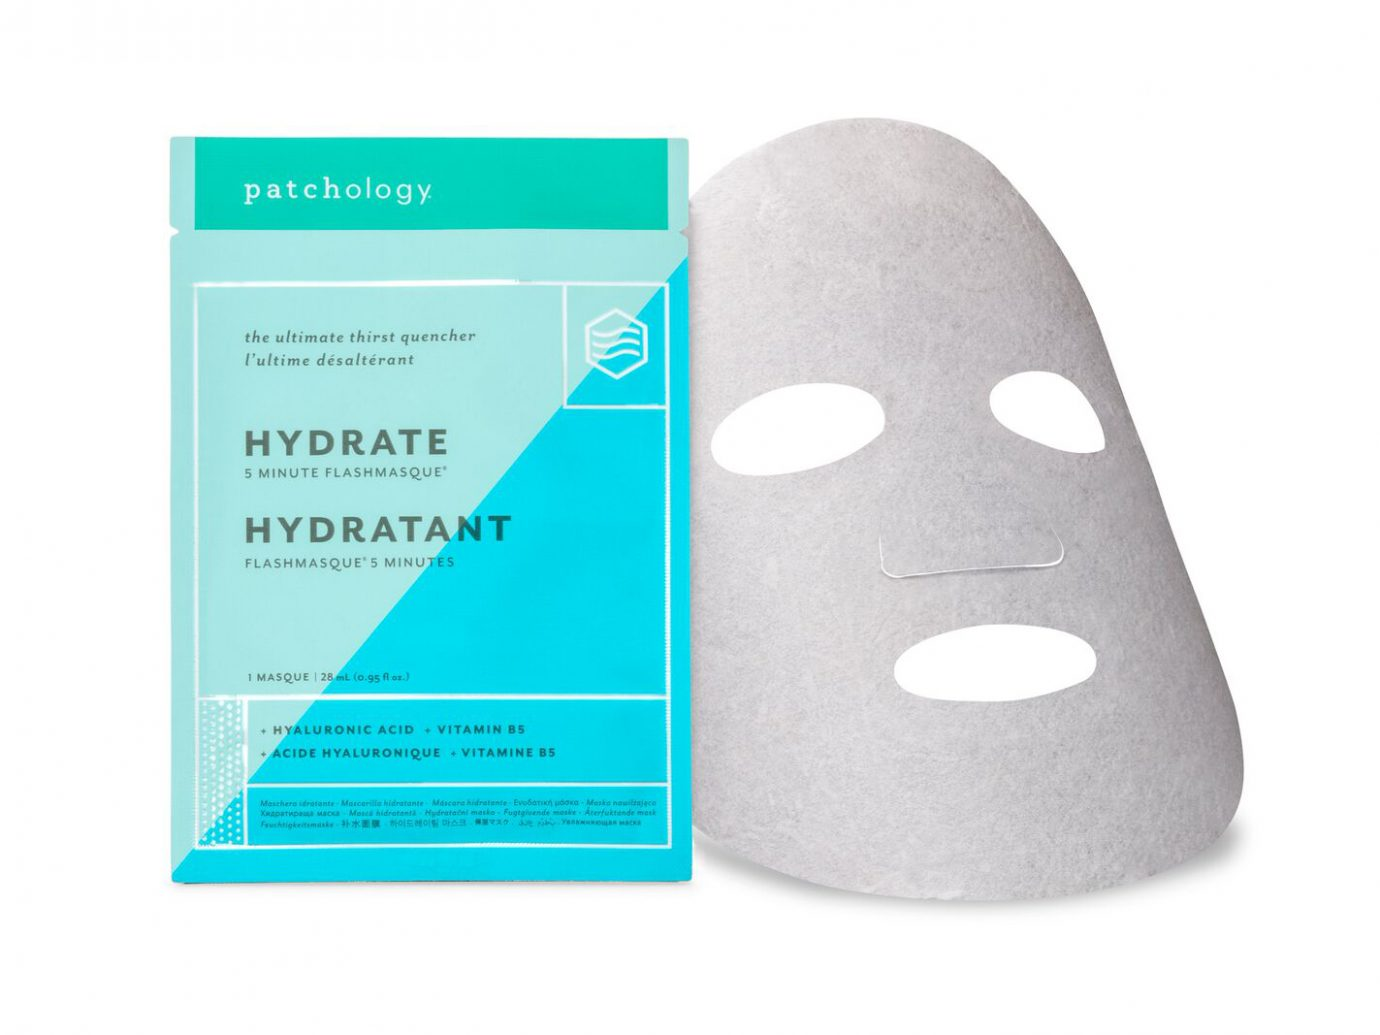 Patchology Hydrating FlashMasque